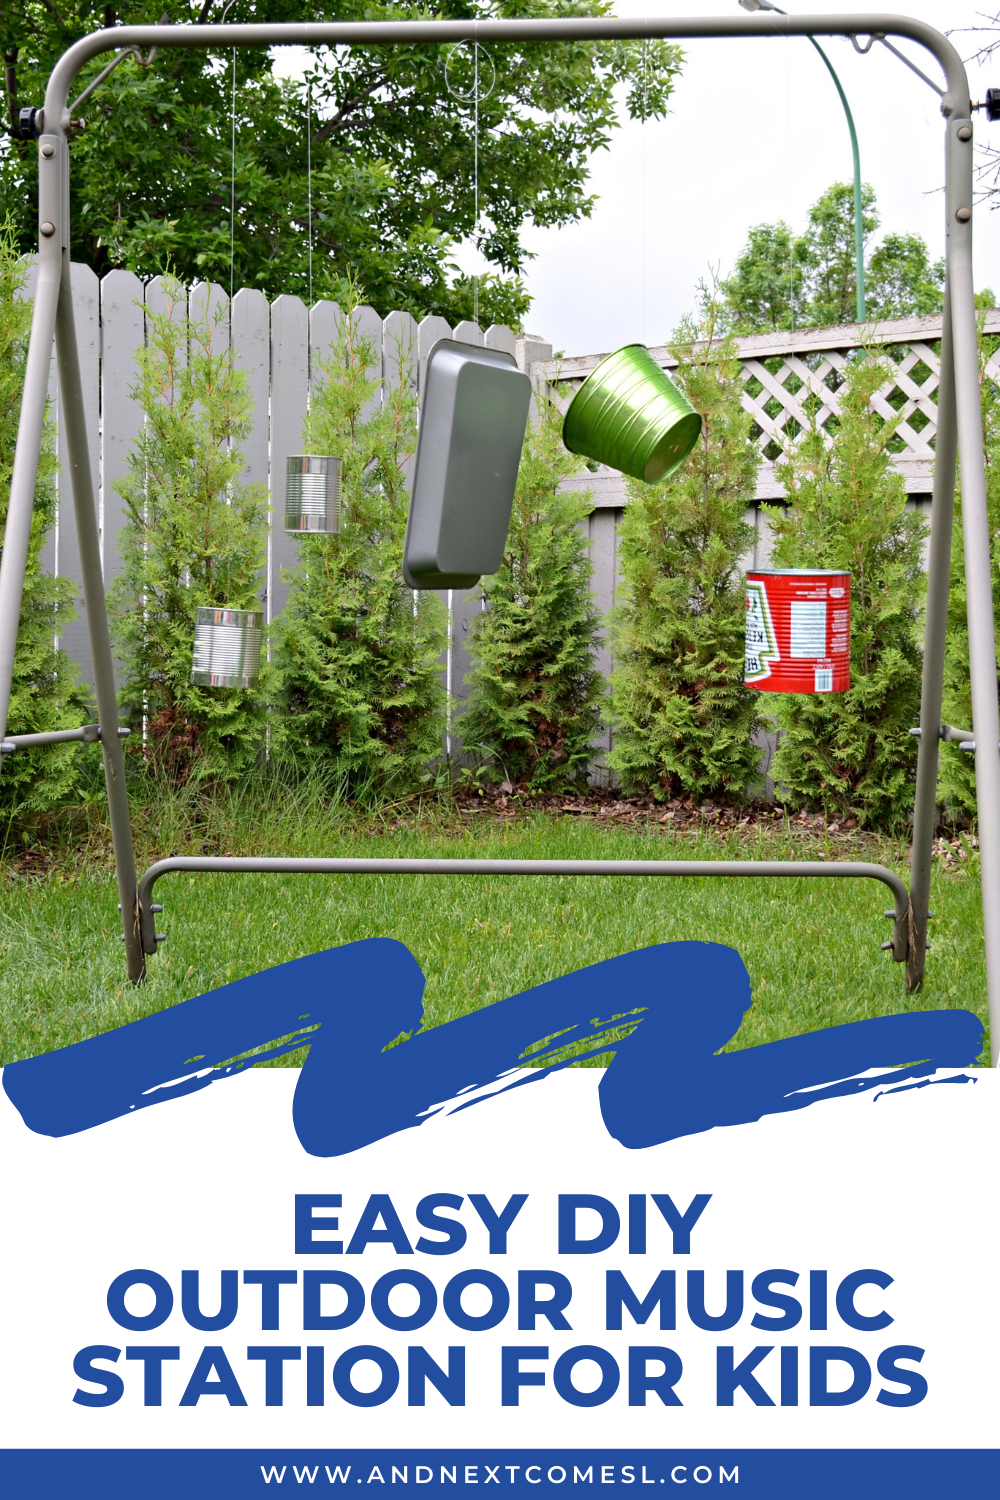 Easy DIY outdoor music station for kids